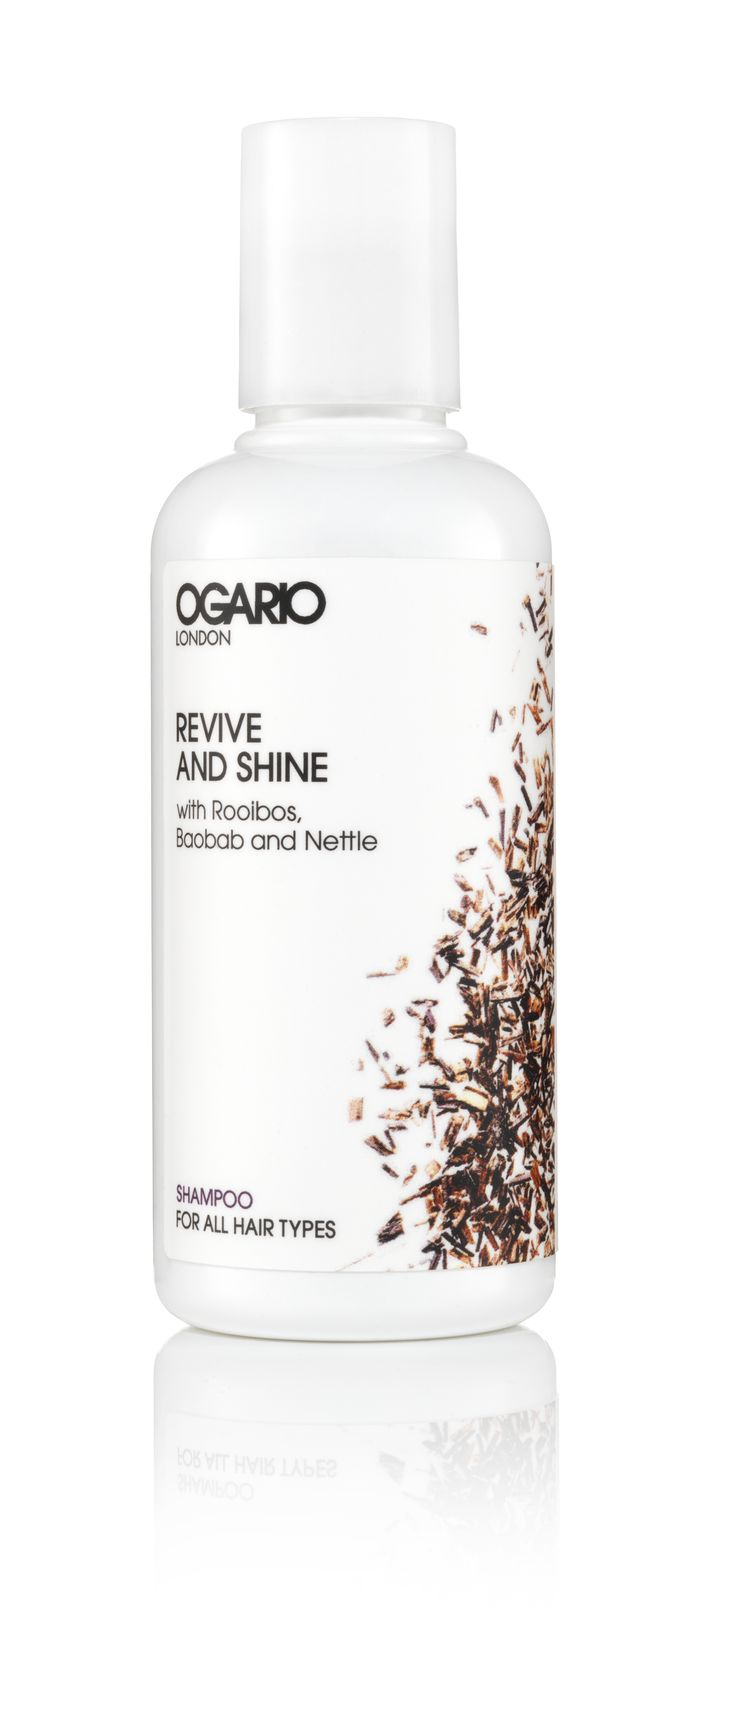 Revive and Shine Shampoo 100ml. Shake hair awake with our award-winning gently cleansing shampoo, developed to lift, restore and put life back into tired tresses. Now in handy travel size. For all hair types.